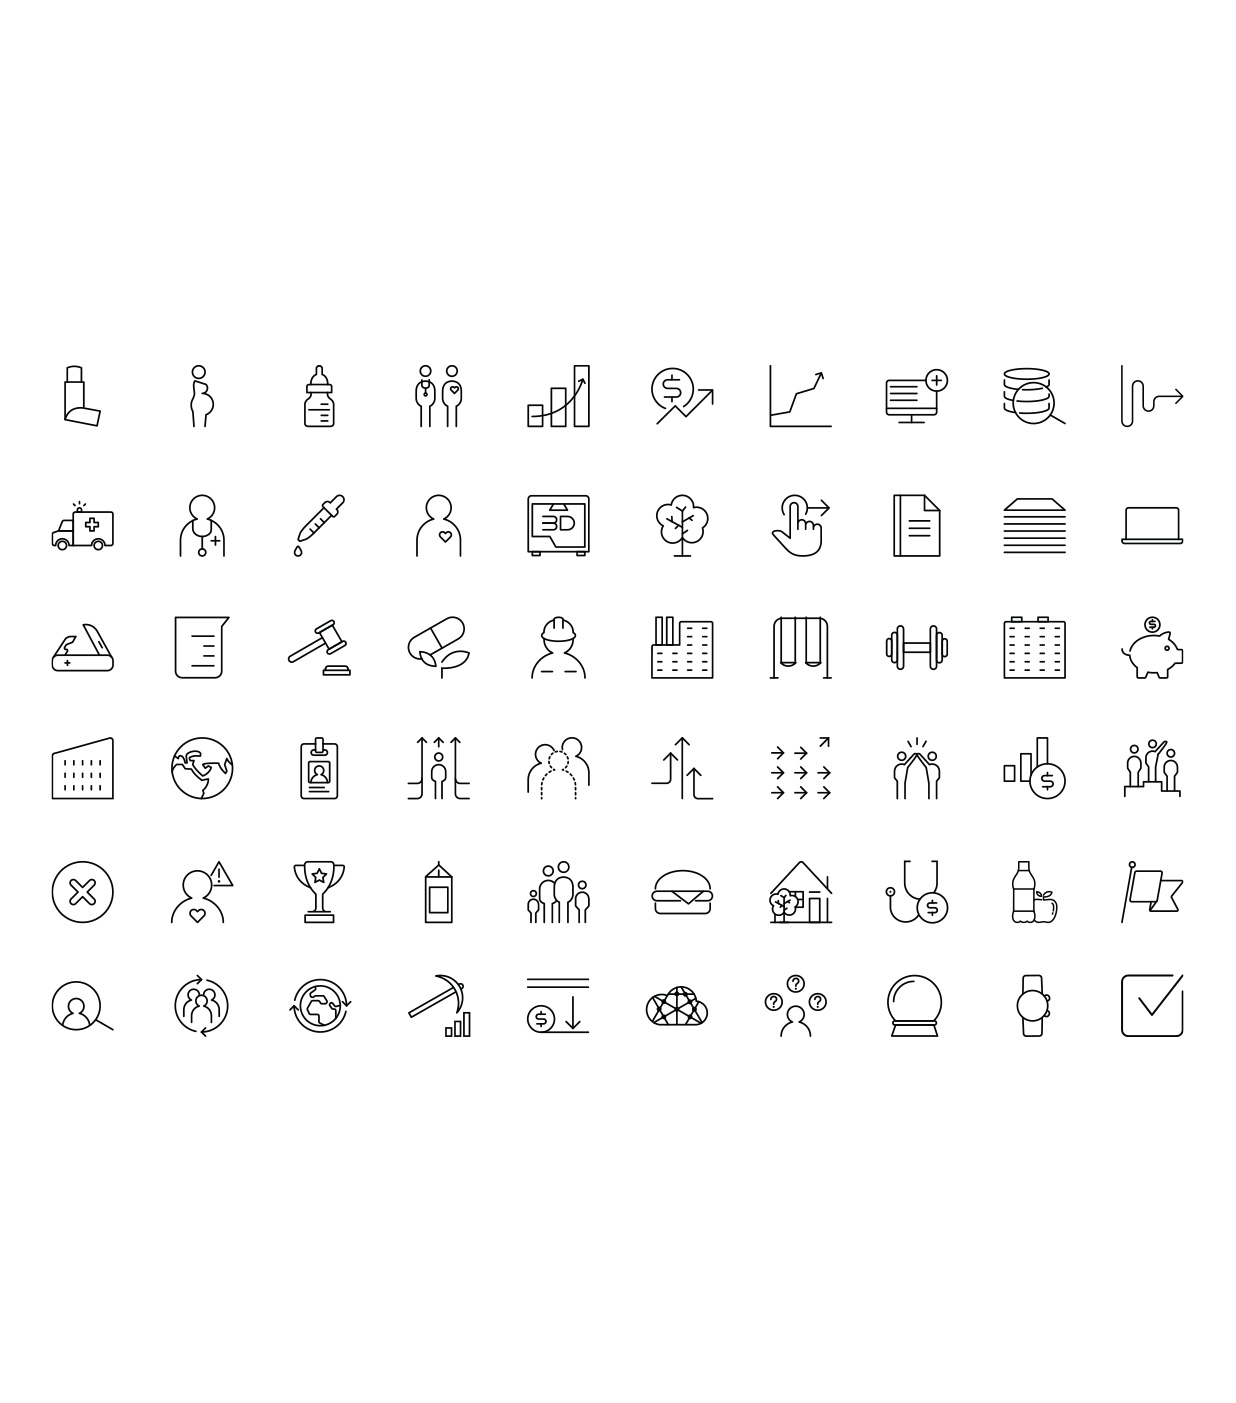 Original icons created to complement the IBM Watson corporate icons